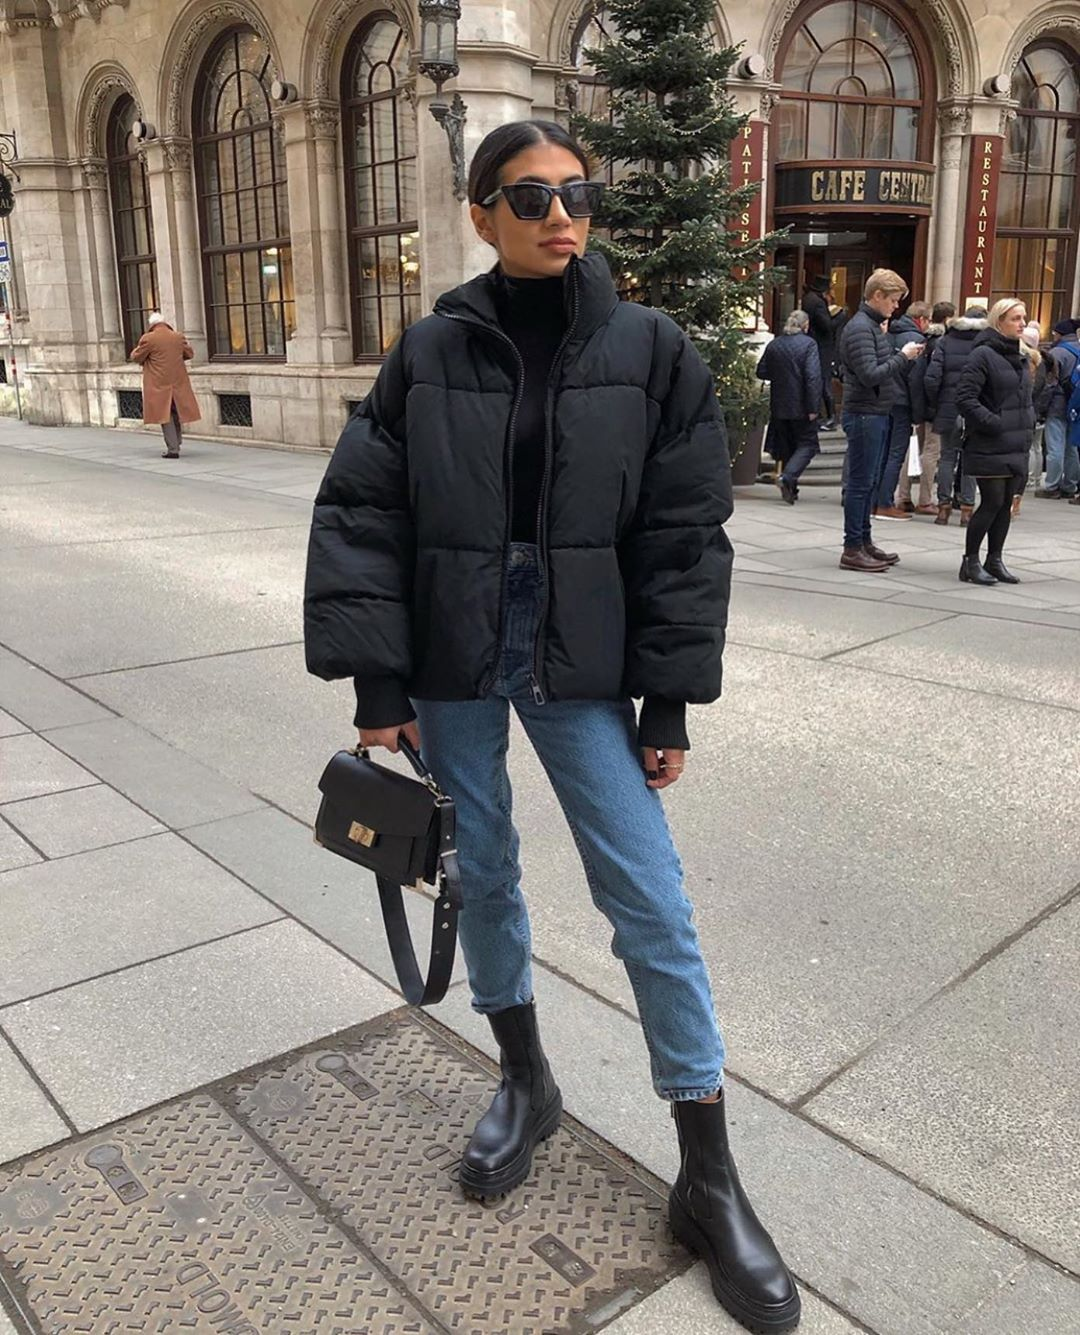 3 306 Aprecieri 23 Comentarii Zara Street Style Zarastreetstyle Pe Instagram Soniahearts Cold Outfits Casual Winter Outfits Puffer Jacket Outfit [ 1335 x 1080 Pixel ]